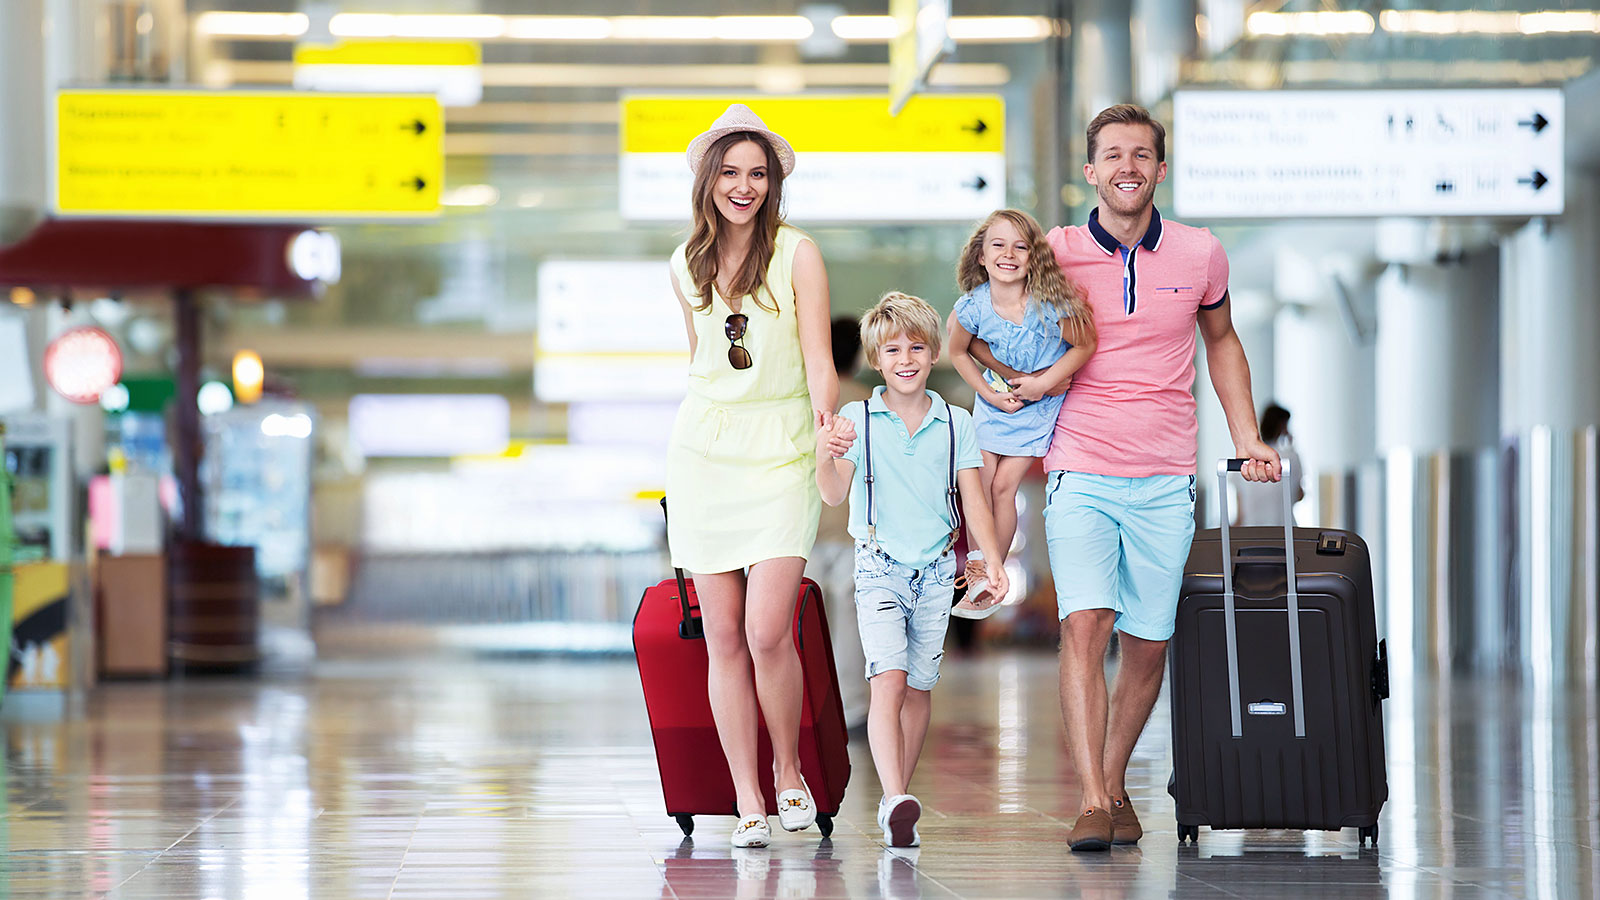 7 essential tips for traveling with kids